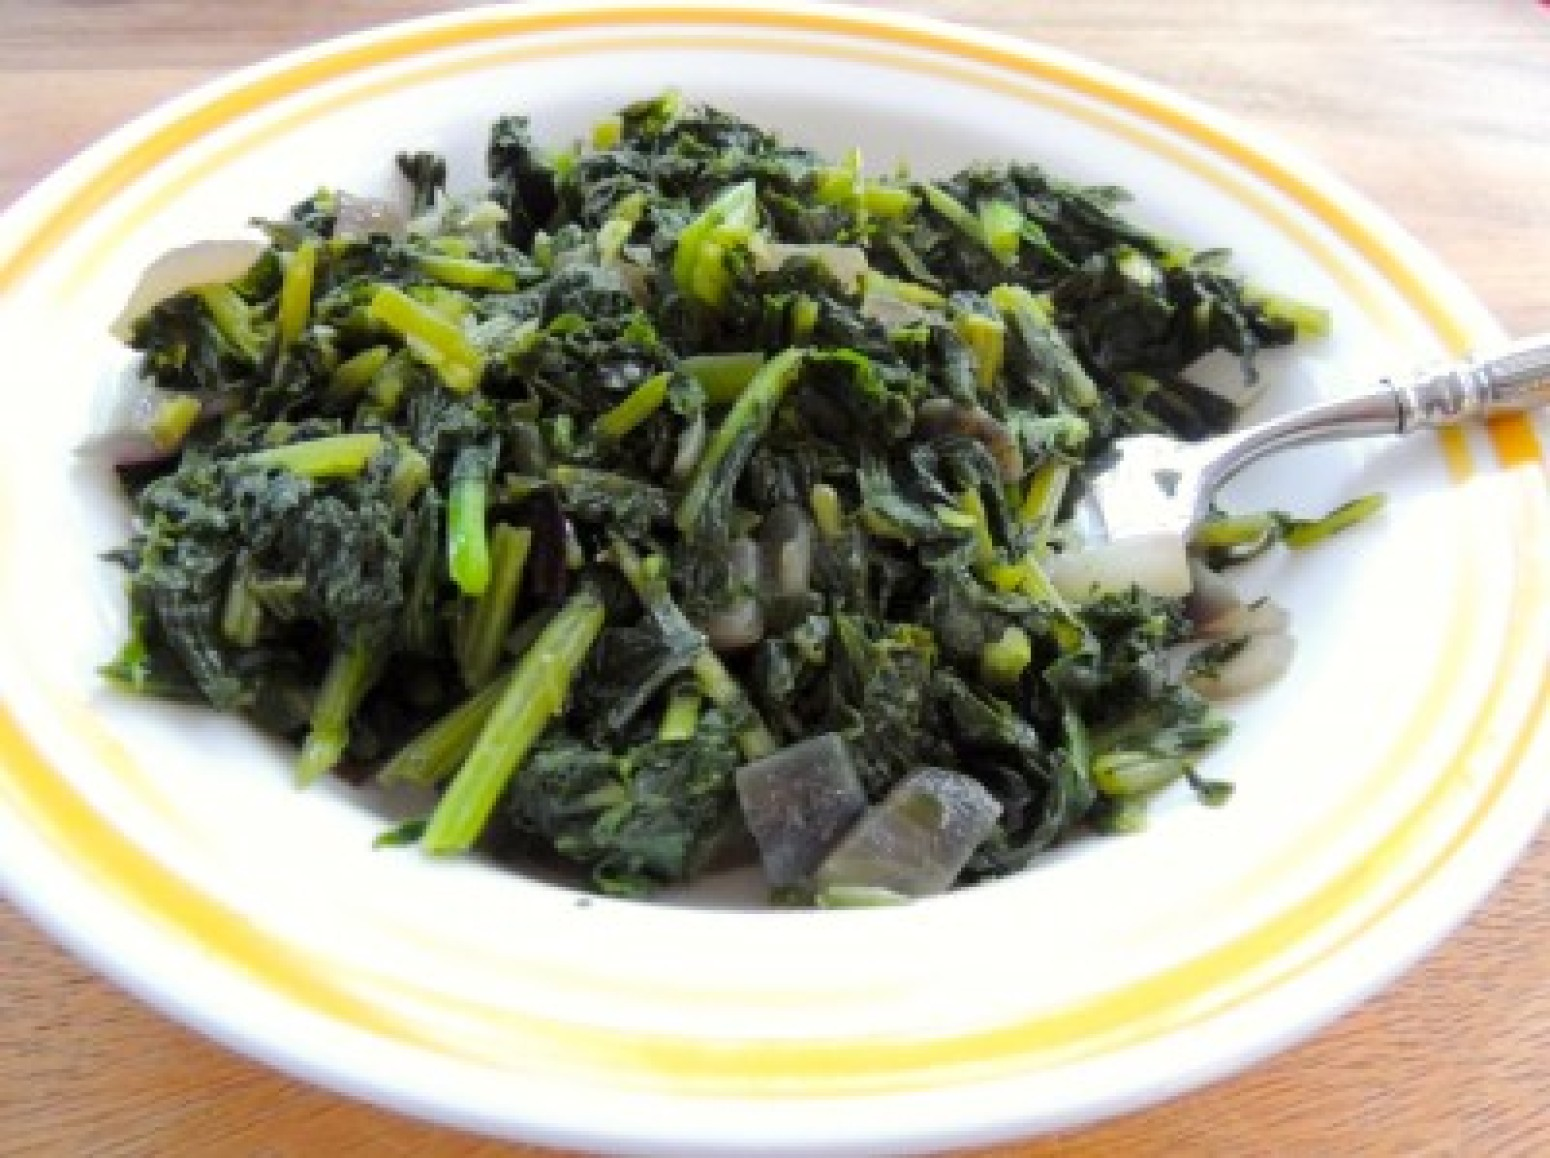 Fried Turnip Greens Recipe | Just A Pinch Recipes Green Turnip Recipe